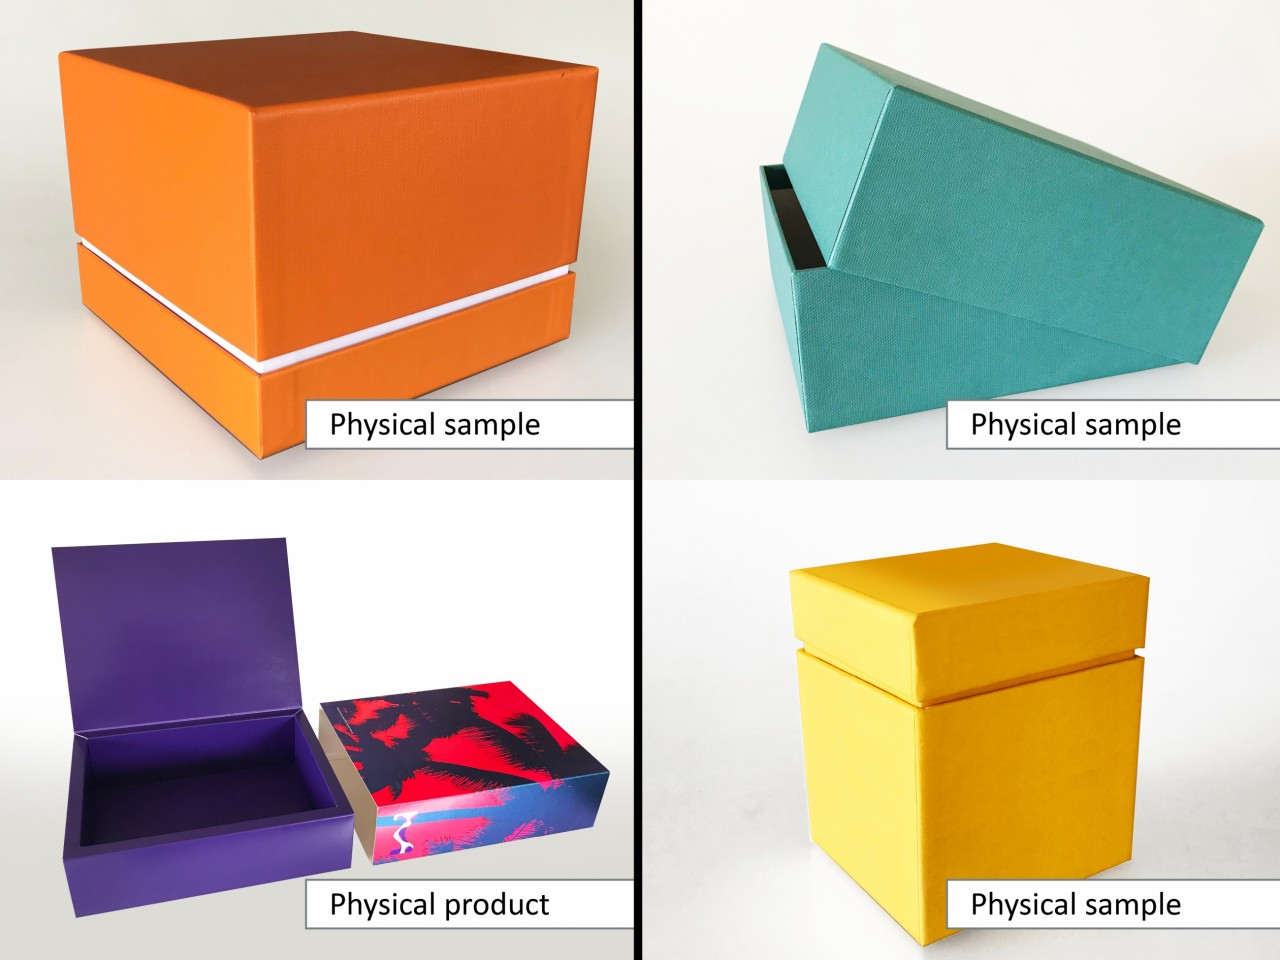 Examples of physical prototype samples